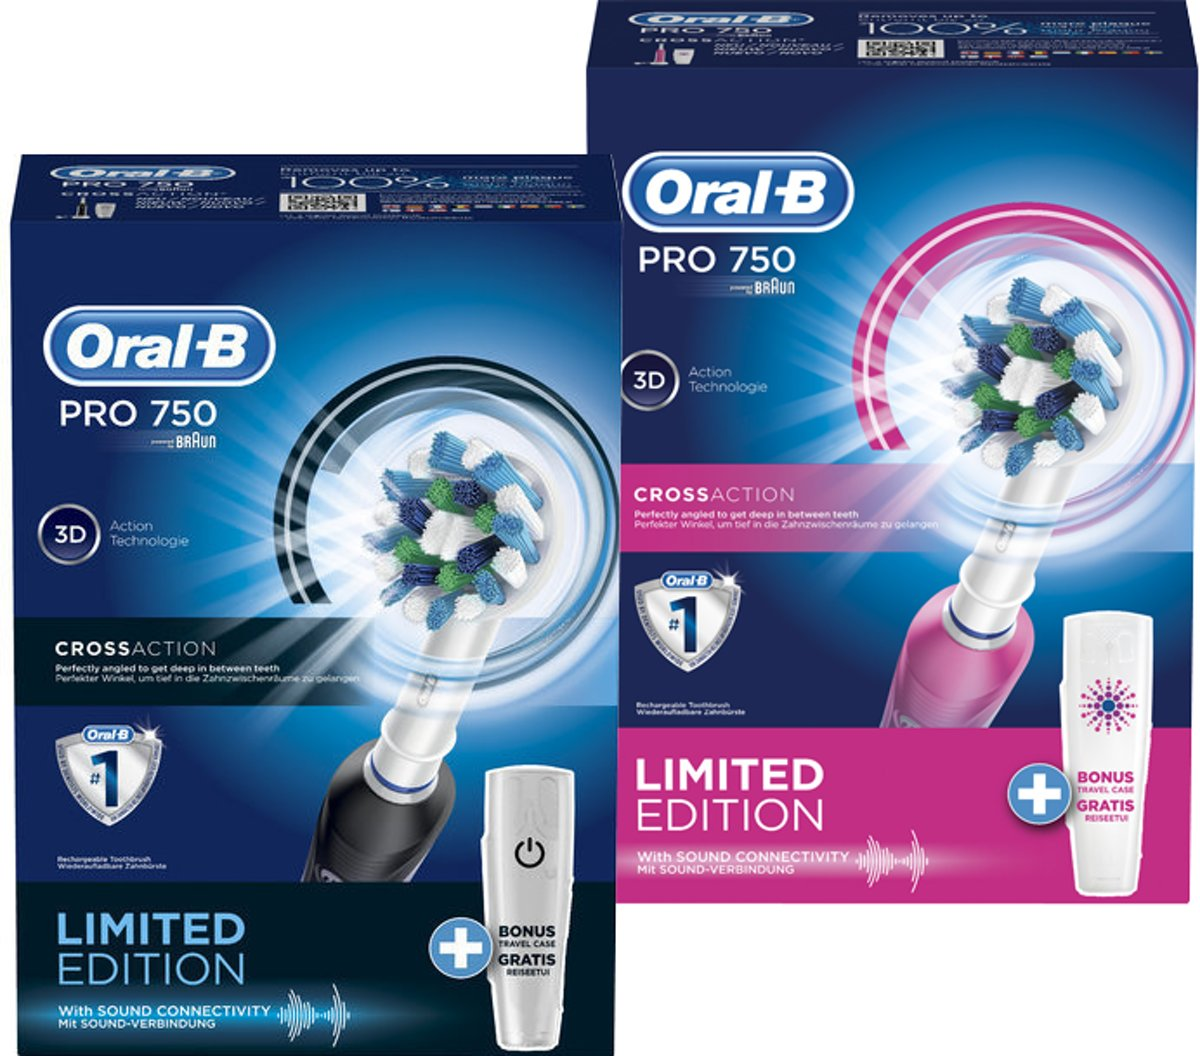 Oral-B PRO 750 DUOPACK Black and Beauty elektrische tandenborstels